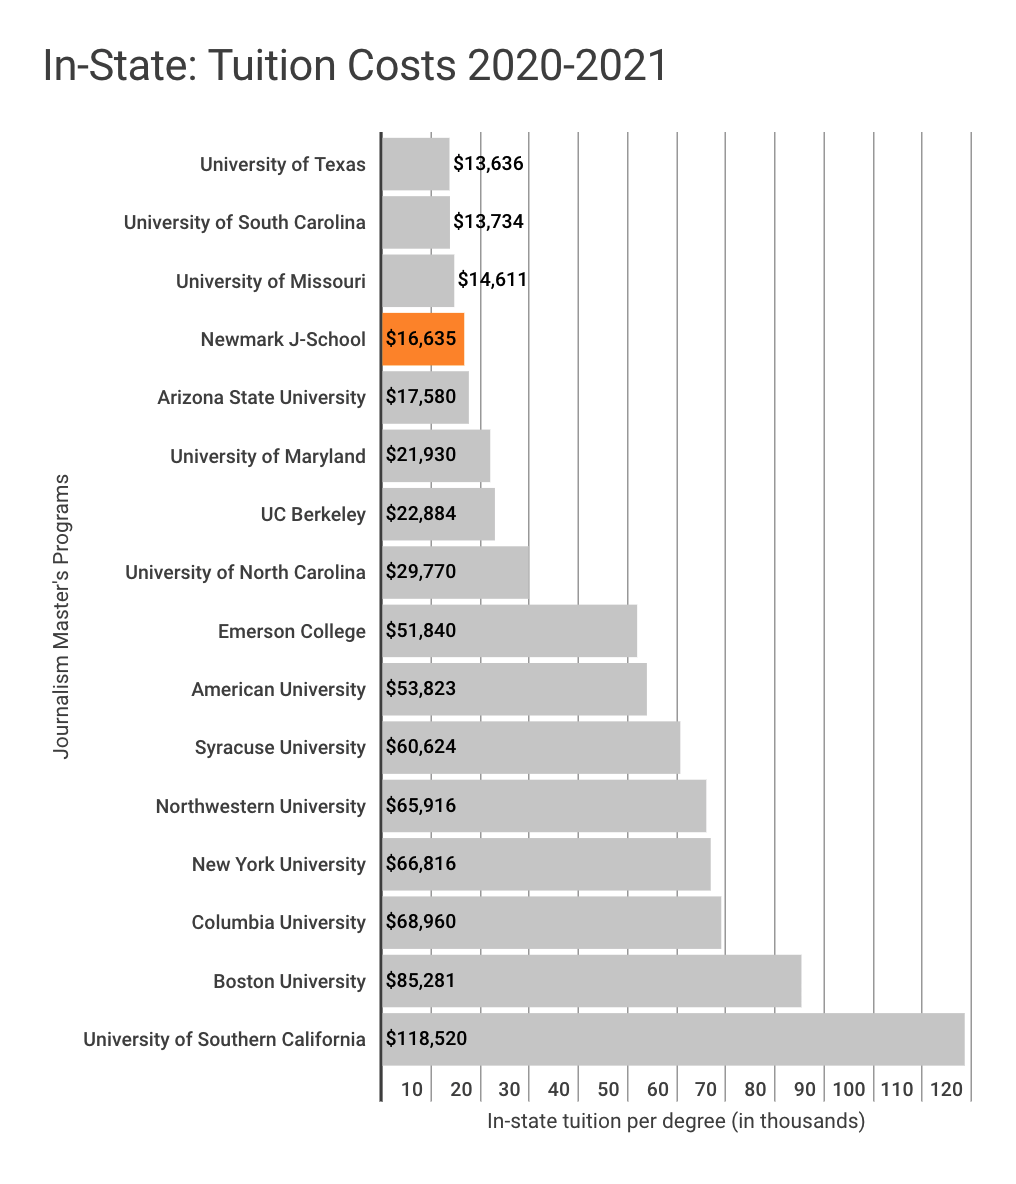 This chart shows that Newmark J-School has the fourth lowest in-state tuition among 16 of the most popular journalism graduate programs in the U.S. for the 2020-2021 academic year. Only the University of Texas at $13,636, the University of South Carolina at $13,734, and the University of Missouri at $14,611 are lower than Newmark J-School's $16,635. The costliest program in this chart is The University of Southern California at $118,520.